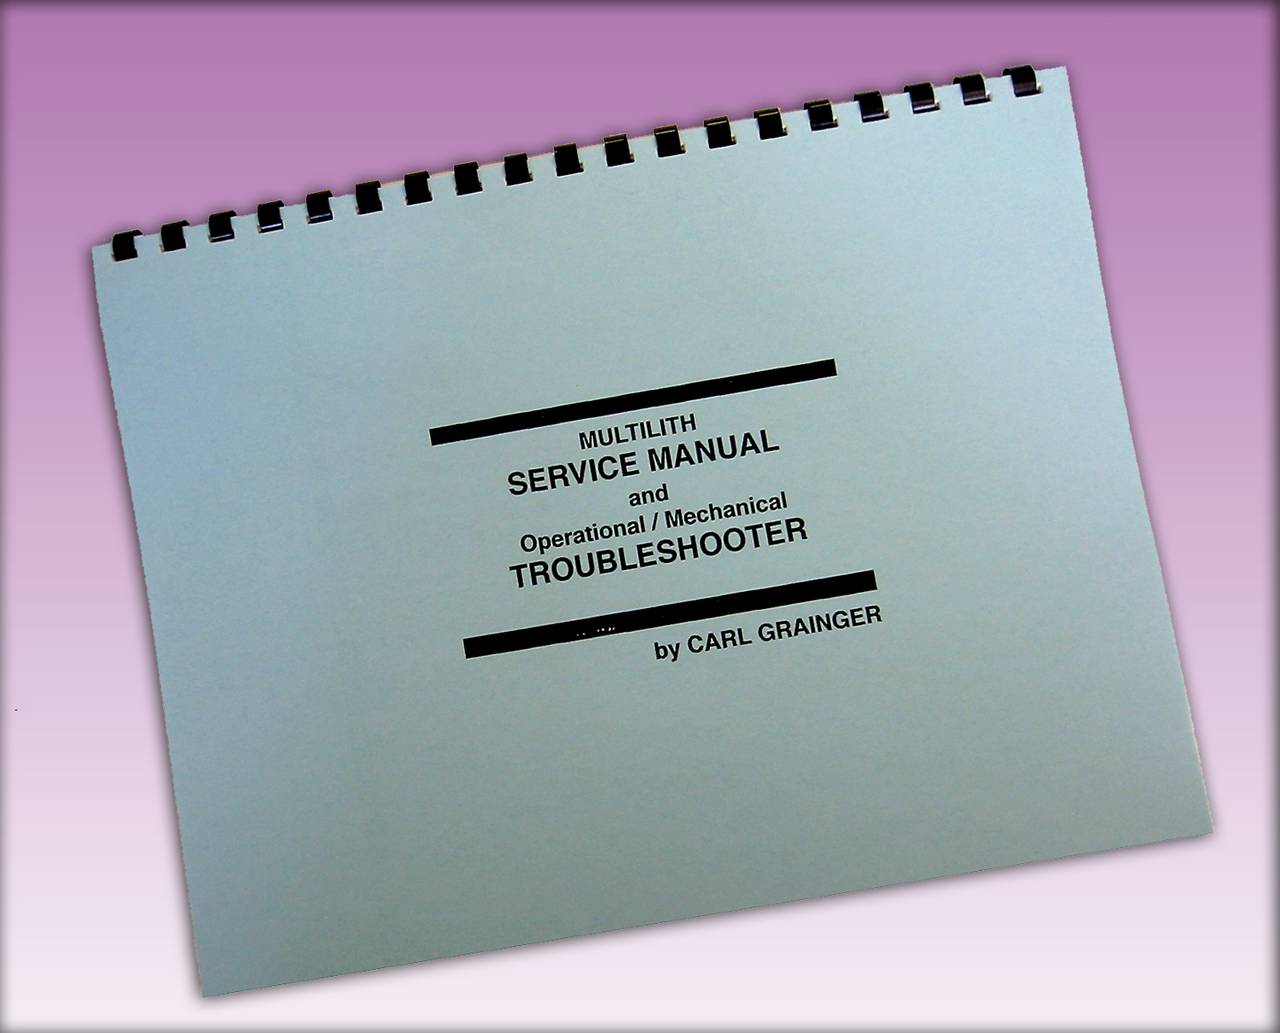 MULTI SERVICE MANUAL AND TROUBLESHOOTER By Carl Grainger